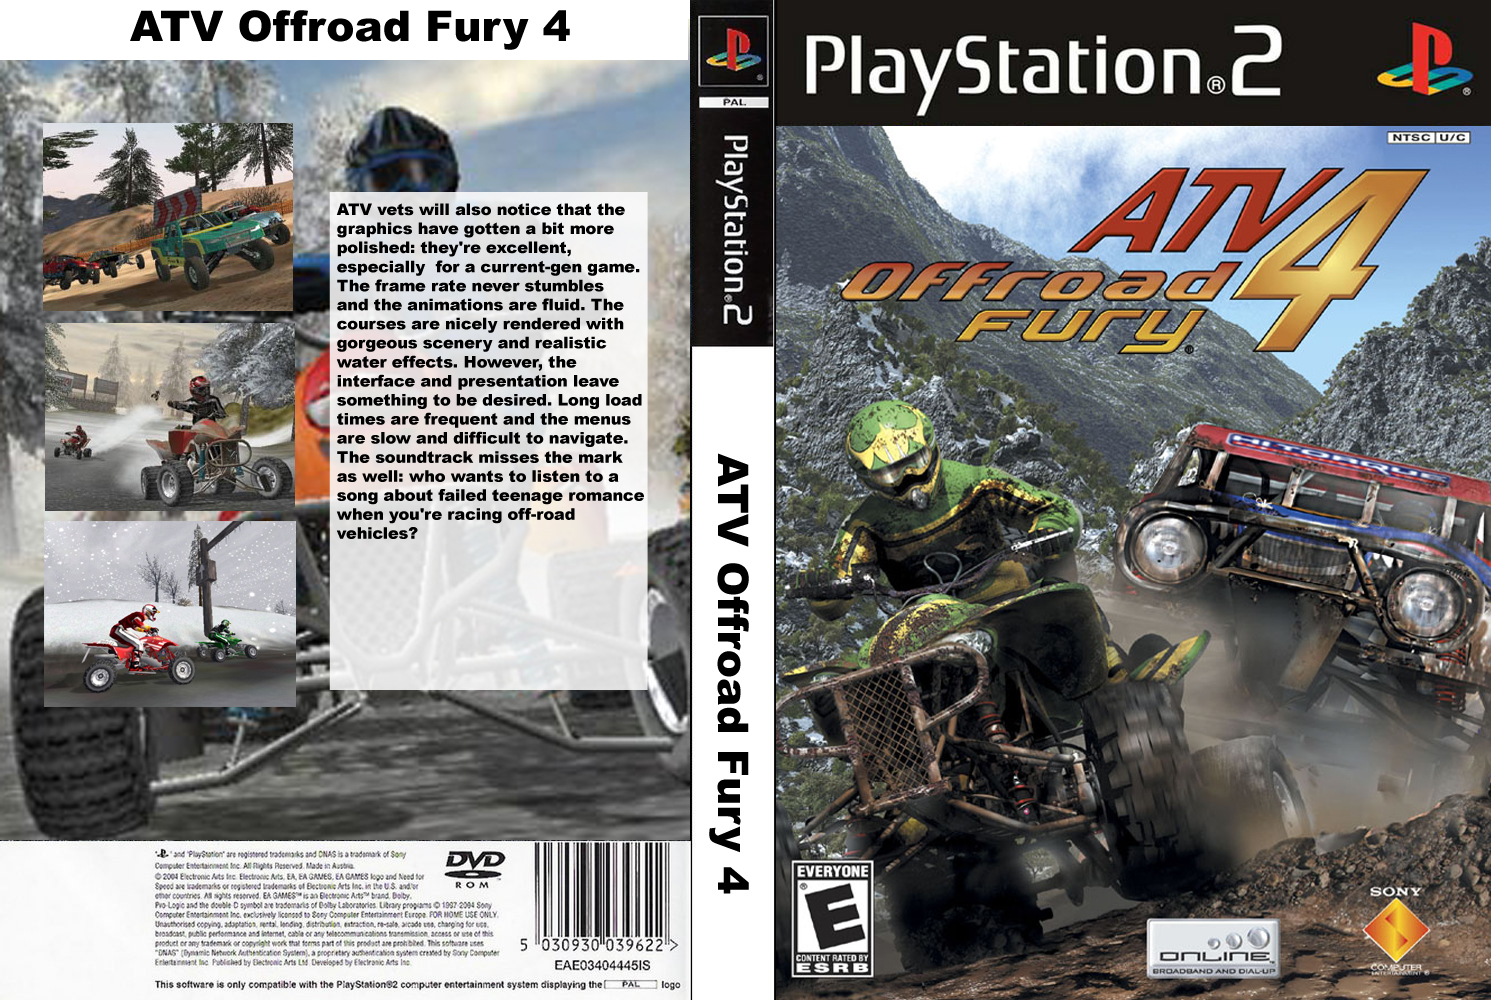 HQ ATV Offroad Fury 4 Wallpapers | File 1078.6Kb